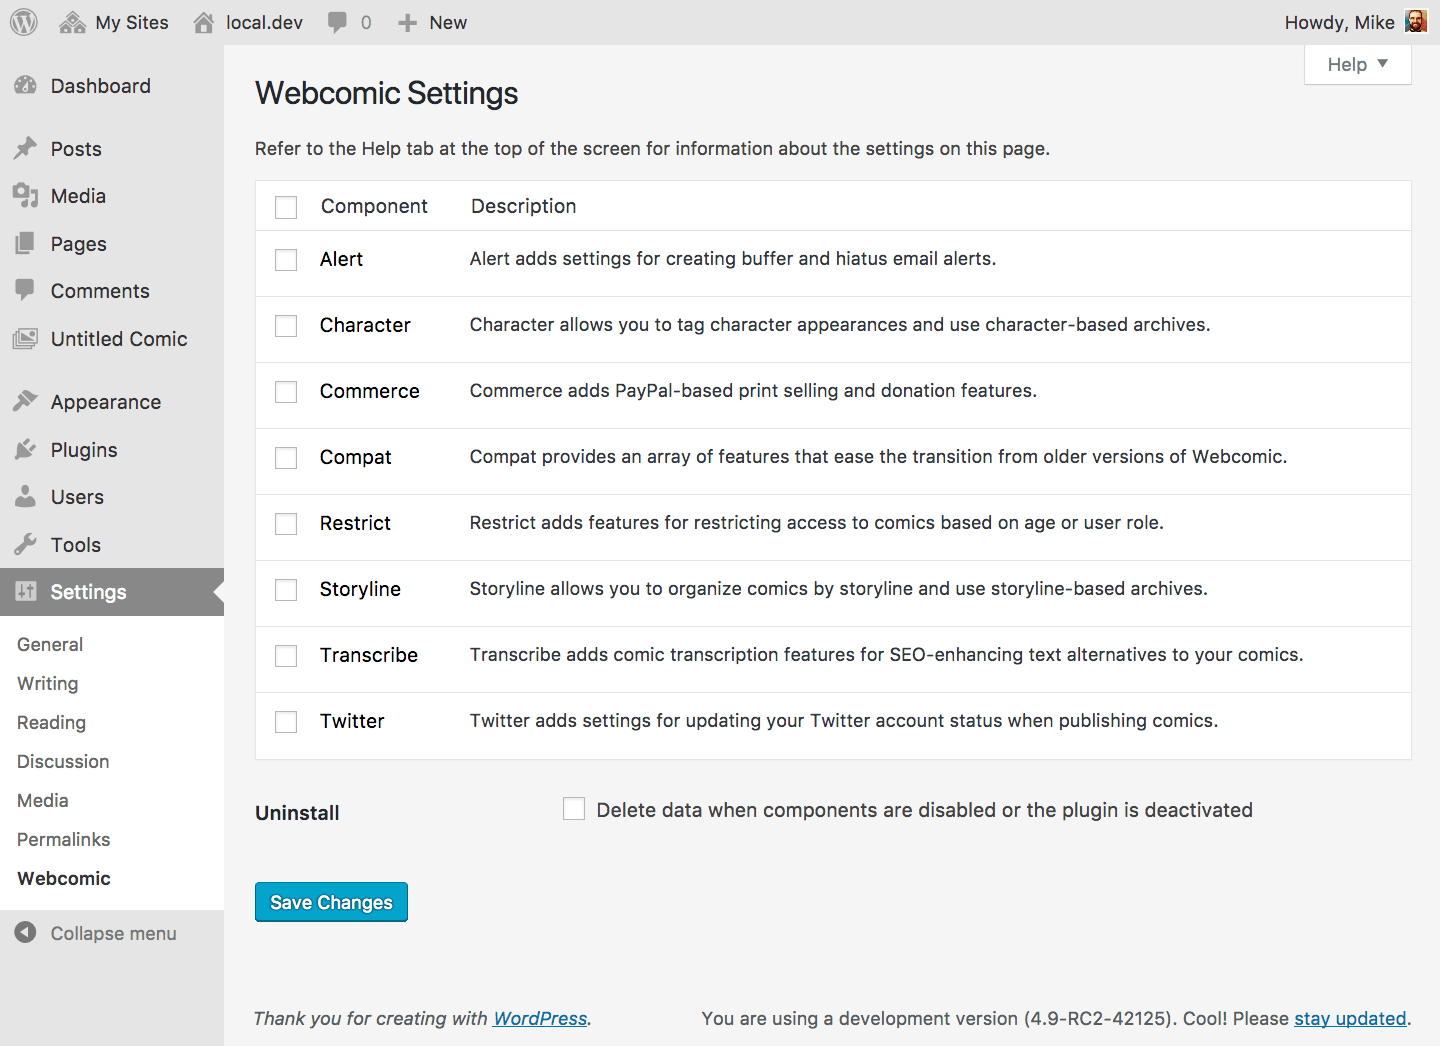 Enable or disable components on the Settings > Webcomic screen.